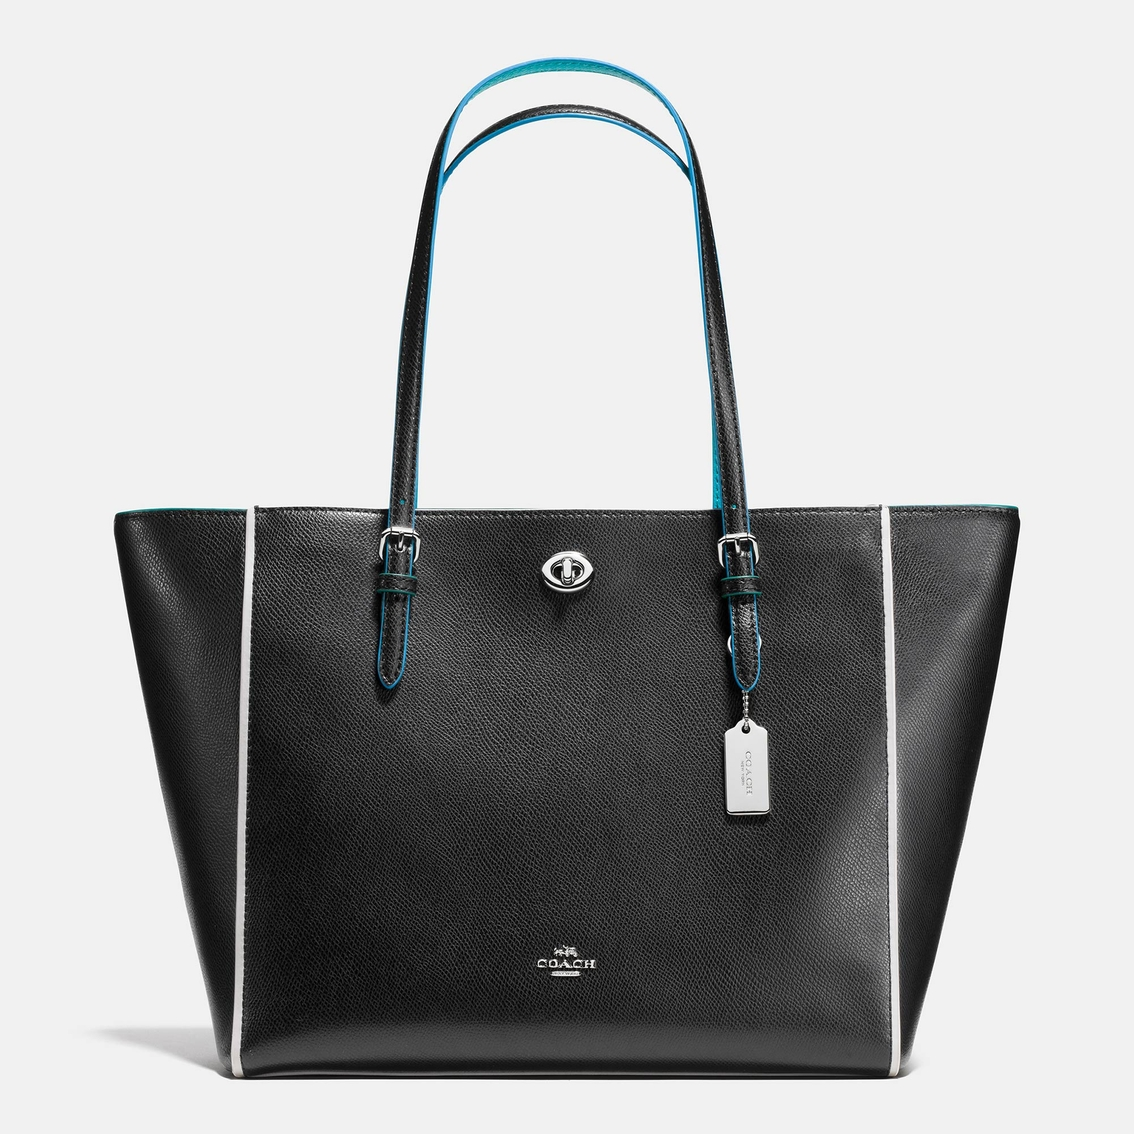 Coach Turnlock Tote In Edgestain Leather | Totes & Shoppers | Handbags